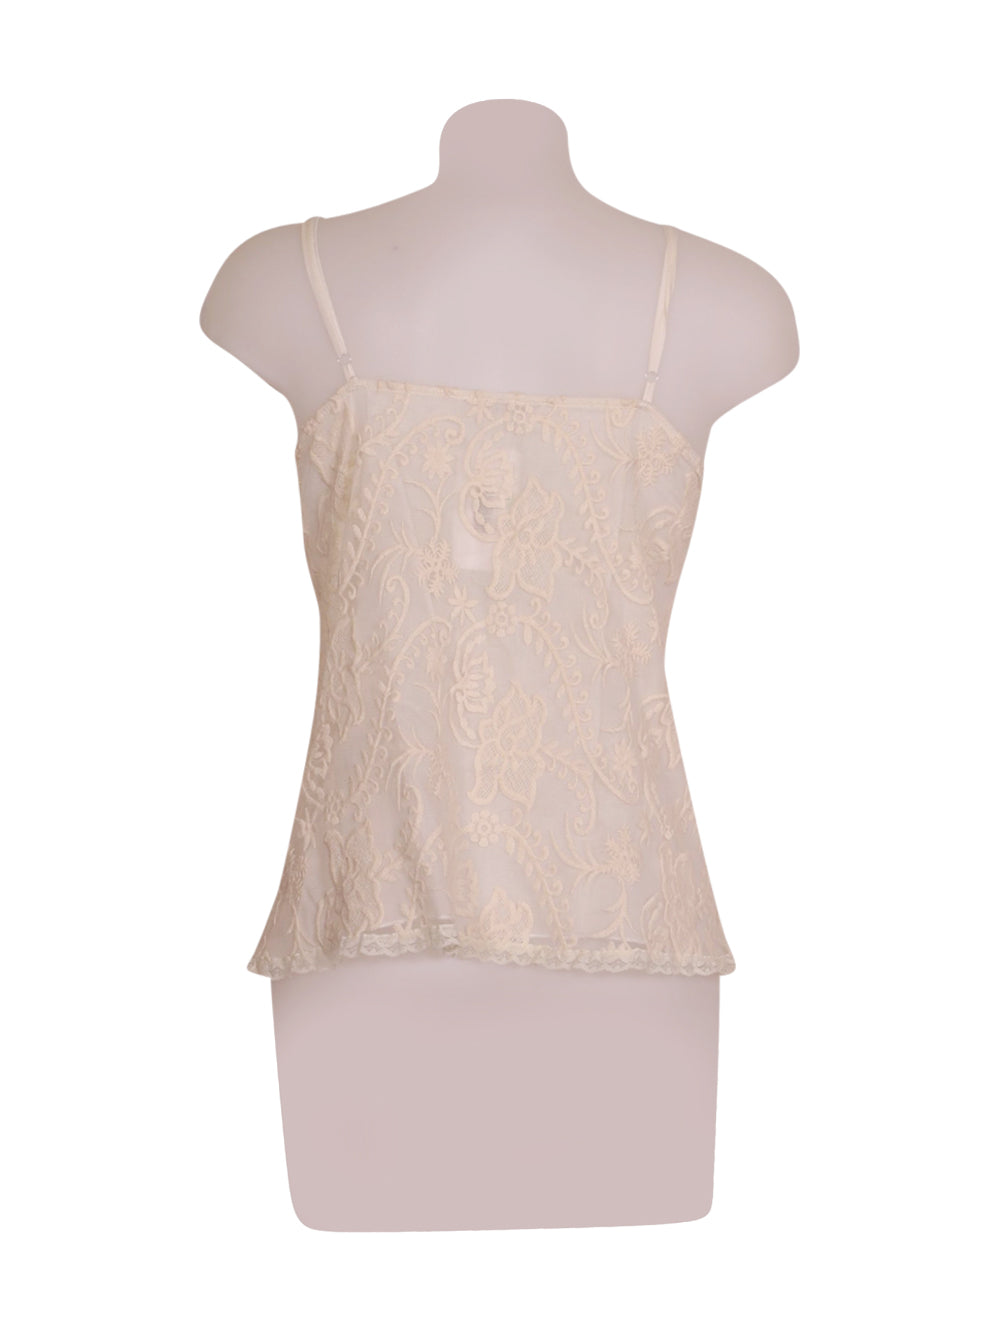 Back photo of Preloved Siste's White Woman's sleeveless top - size 10/M